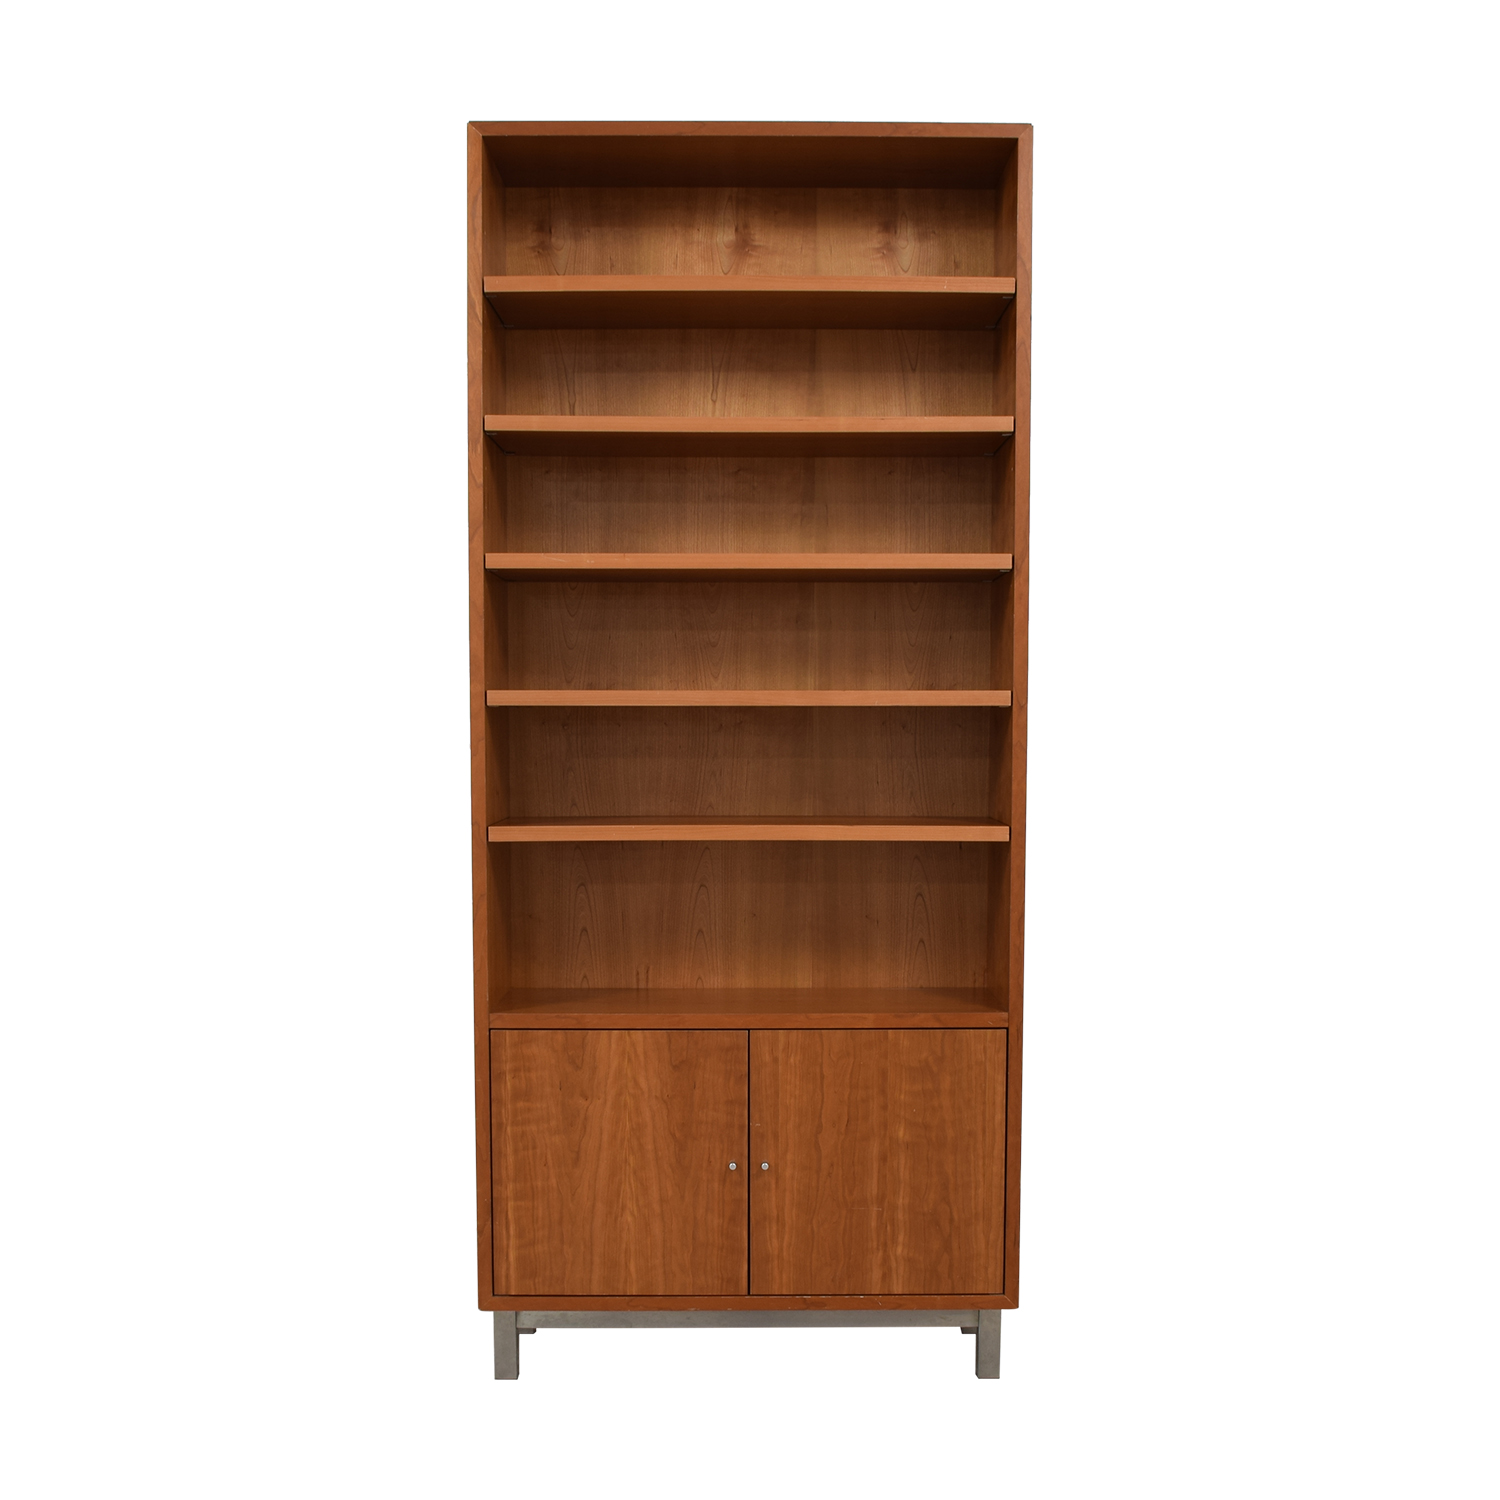 Room & Board Room & Board Bookcase on sale